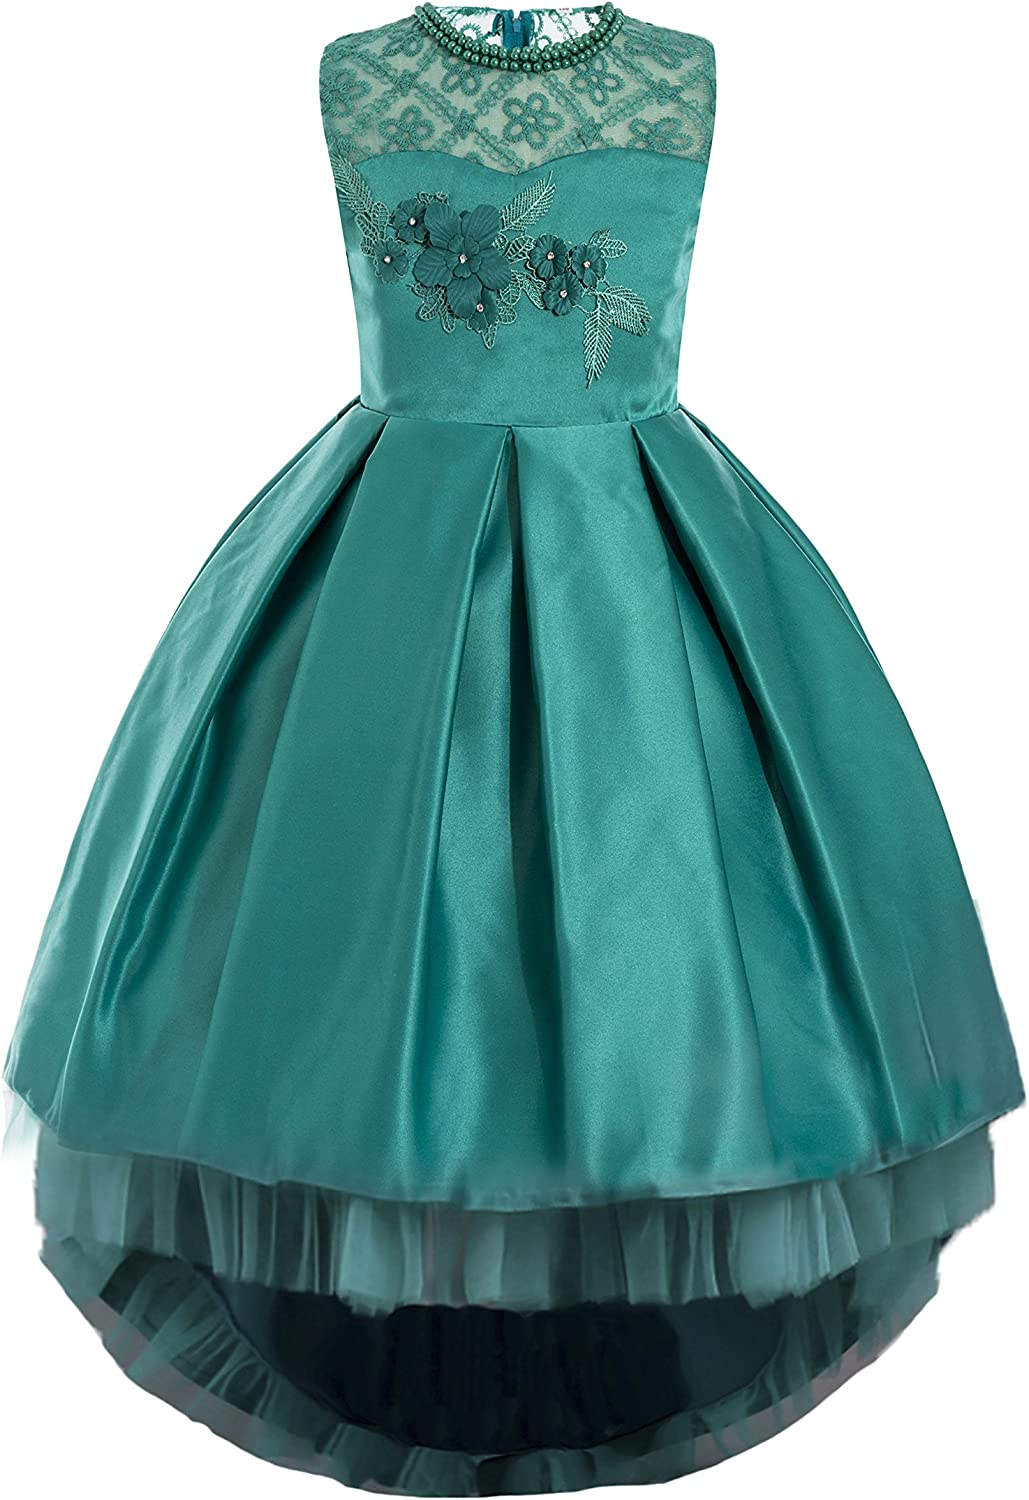 aibeiboutique Flower Girl Dress Princess Butterfly Ball Gown Dresses for Wedding Birthday Party